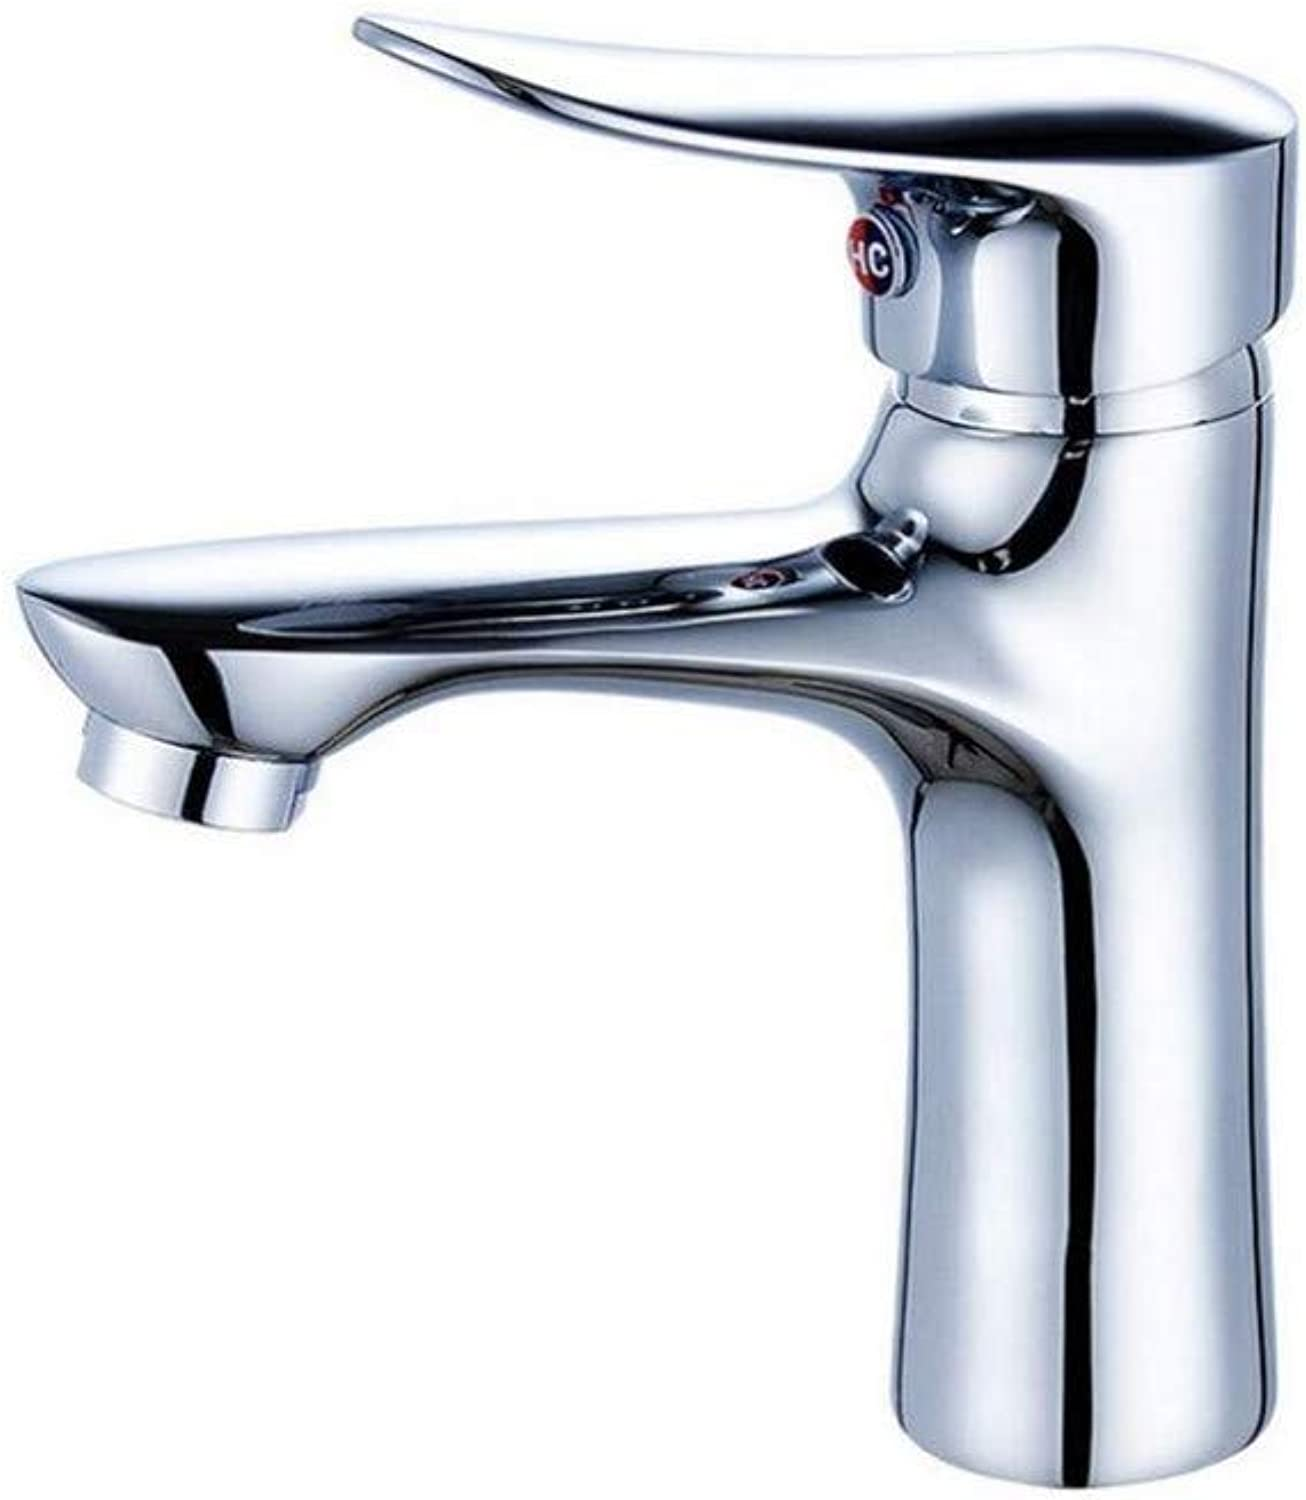 Taps Kitchen Sinkfacebasin Faucet Washbasin Faucet Shark Single Hole Faucet Cold and Hot Water